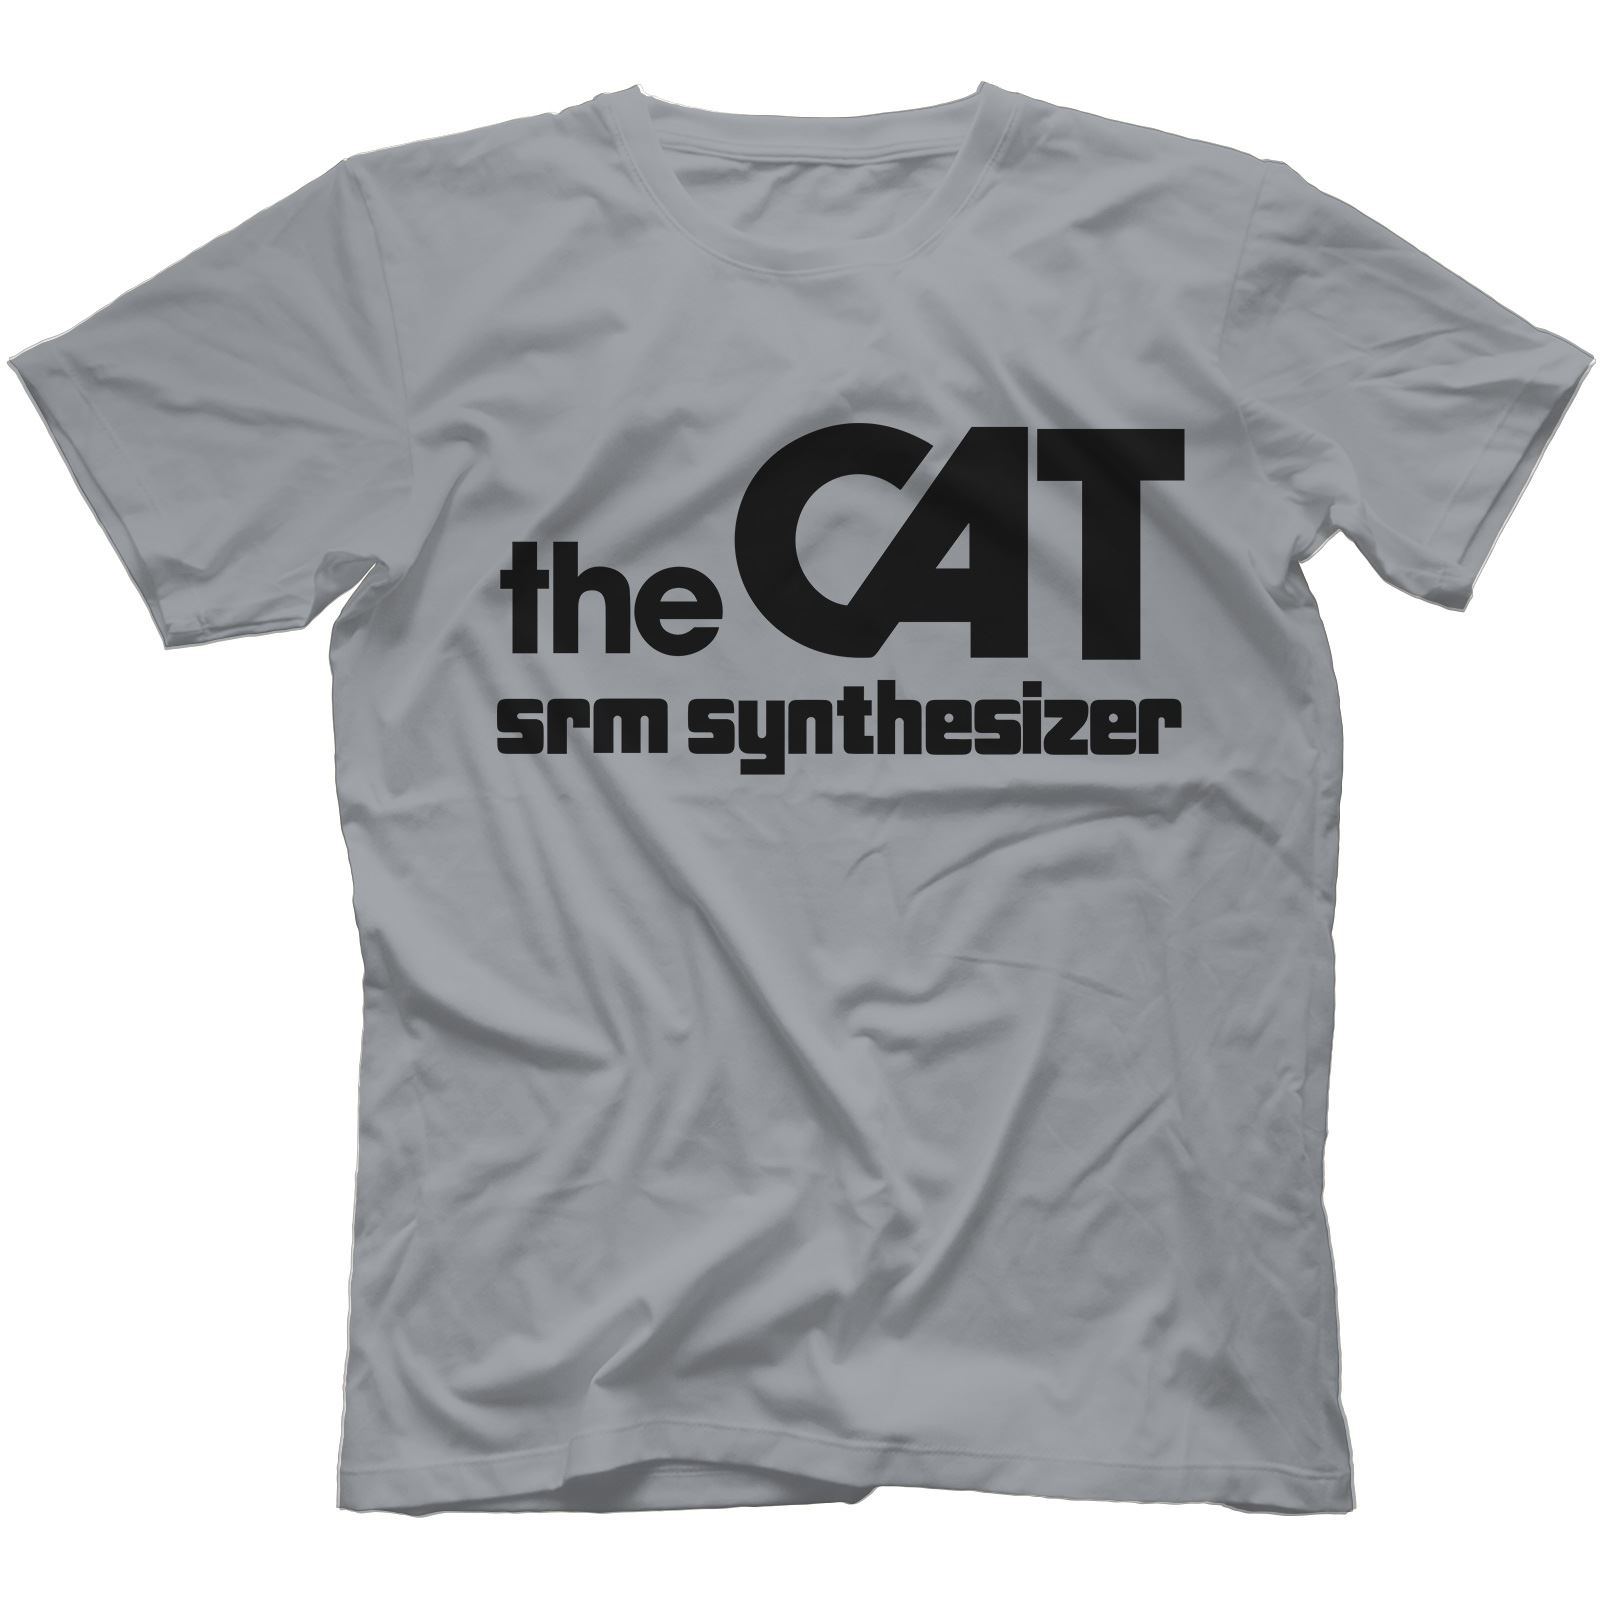 The-Cat-SRM-Synthesiser-T-Shirt-100-Cotton-Retro-Analog-Arp-Odyssey Indexbild 30